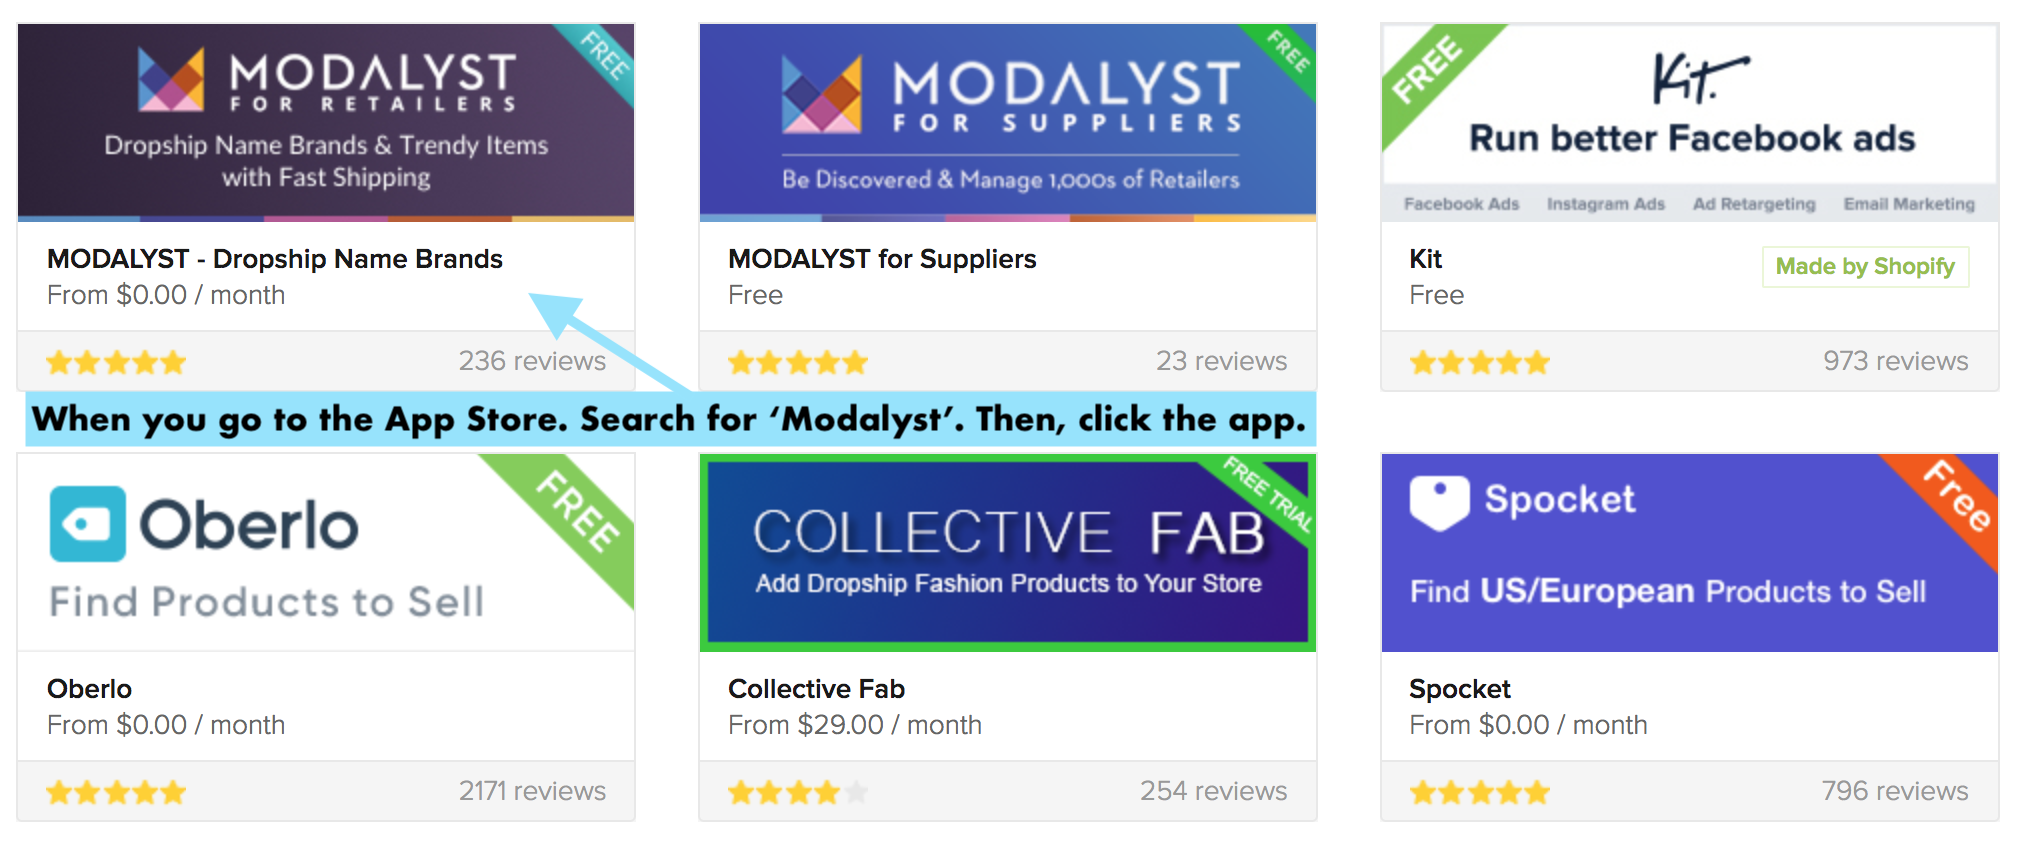 When you go to the App Store. Search for 'Modalyst'. Then, click the app.